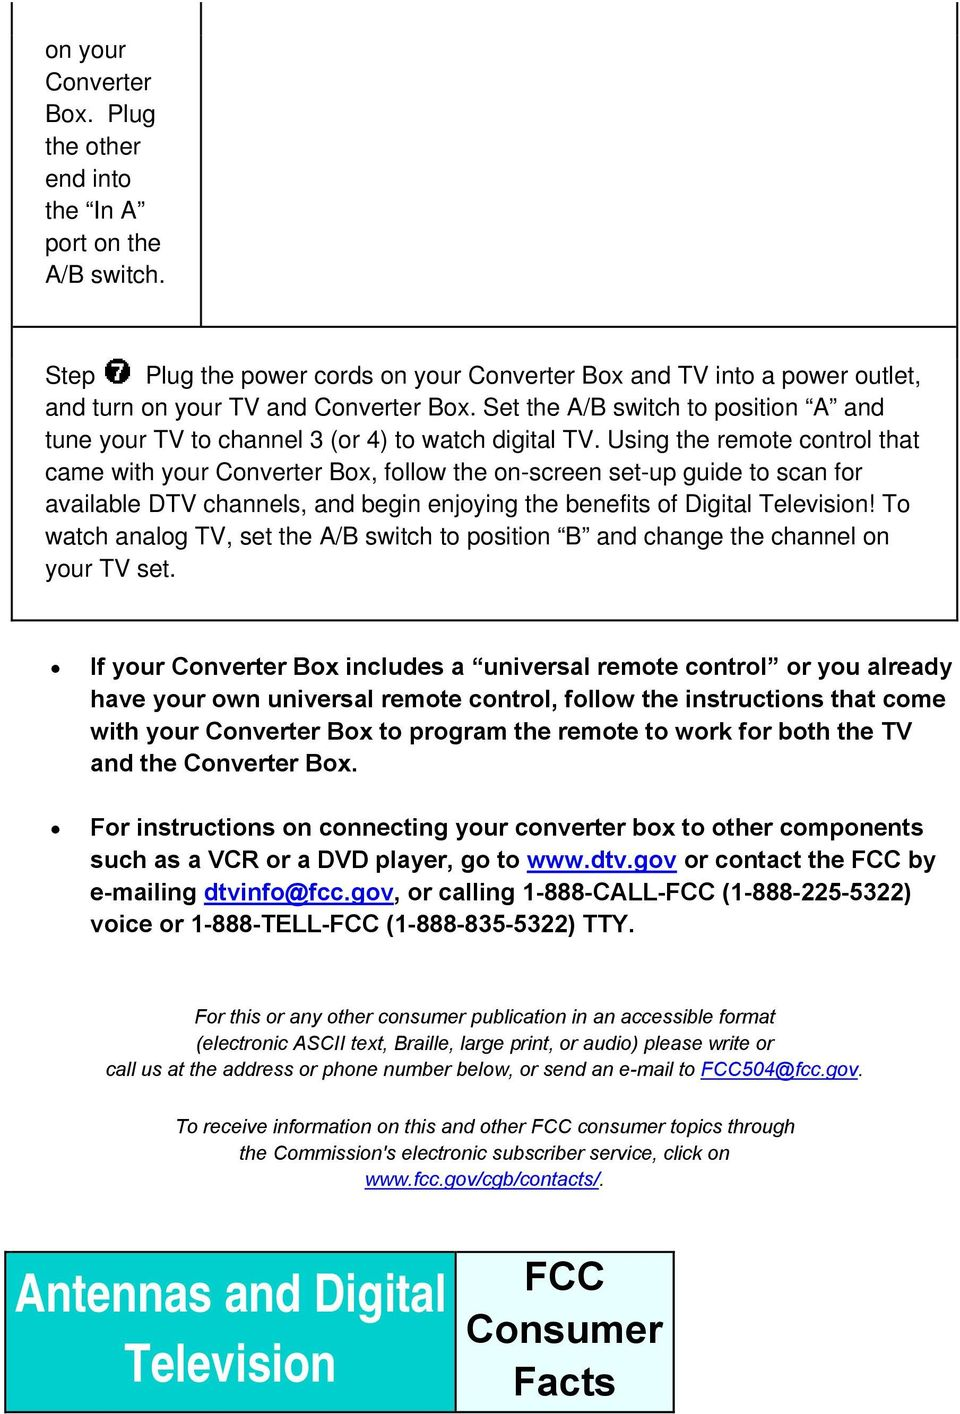 Using the remote control that came with your Converter Box, follow the on-screen set-up guide to scan for available DTV channels, and begin enjoying the benefits of Digital Television!